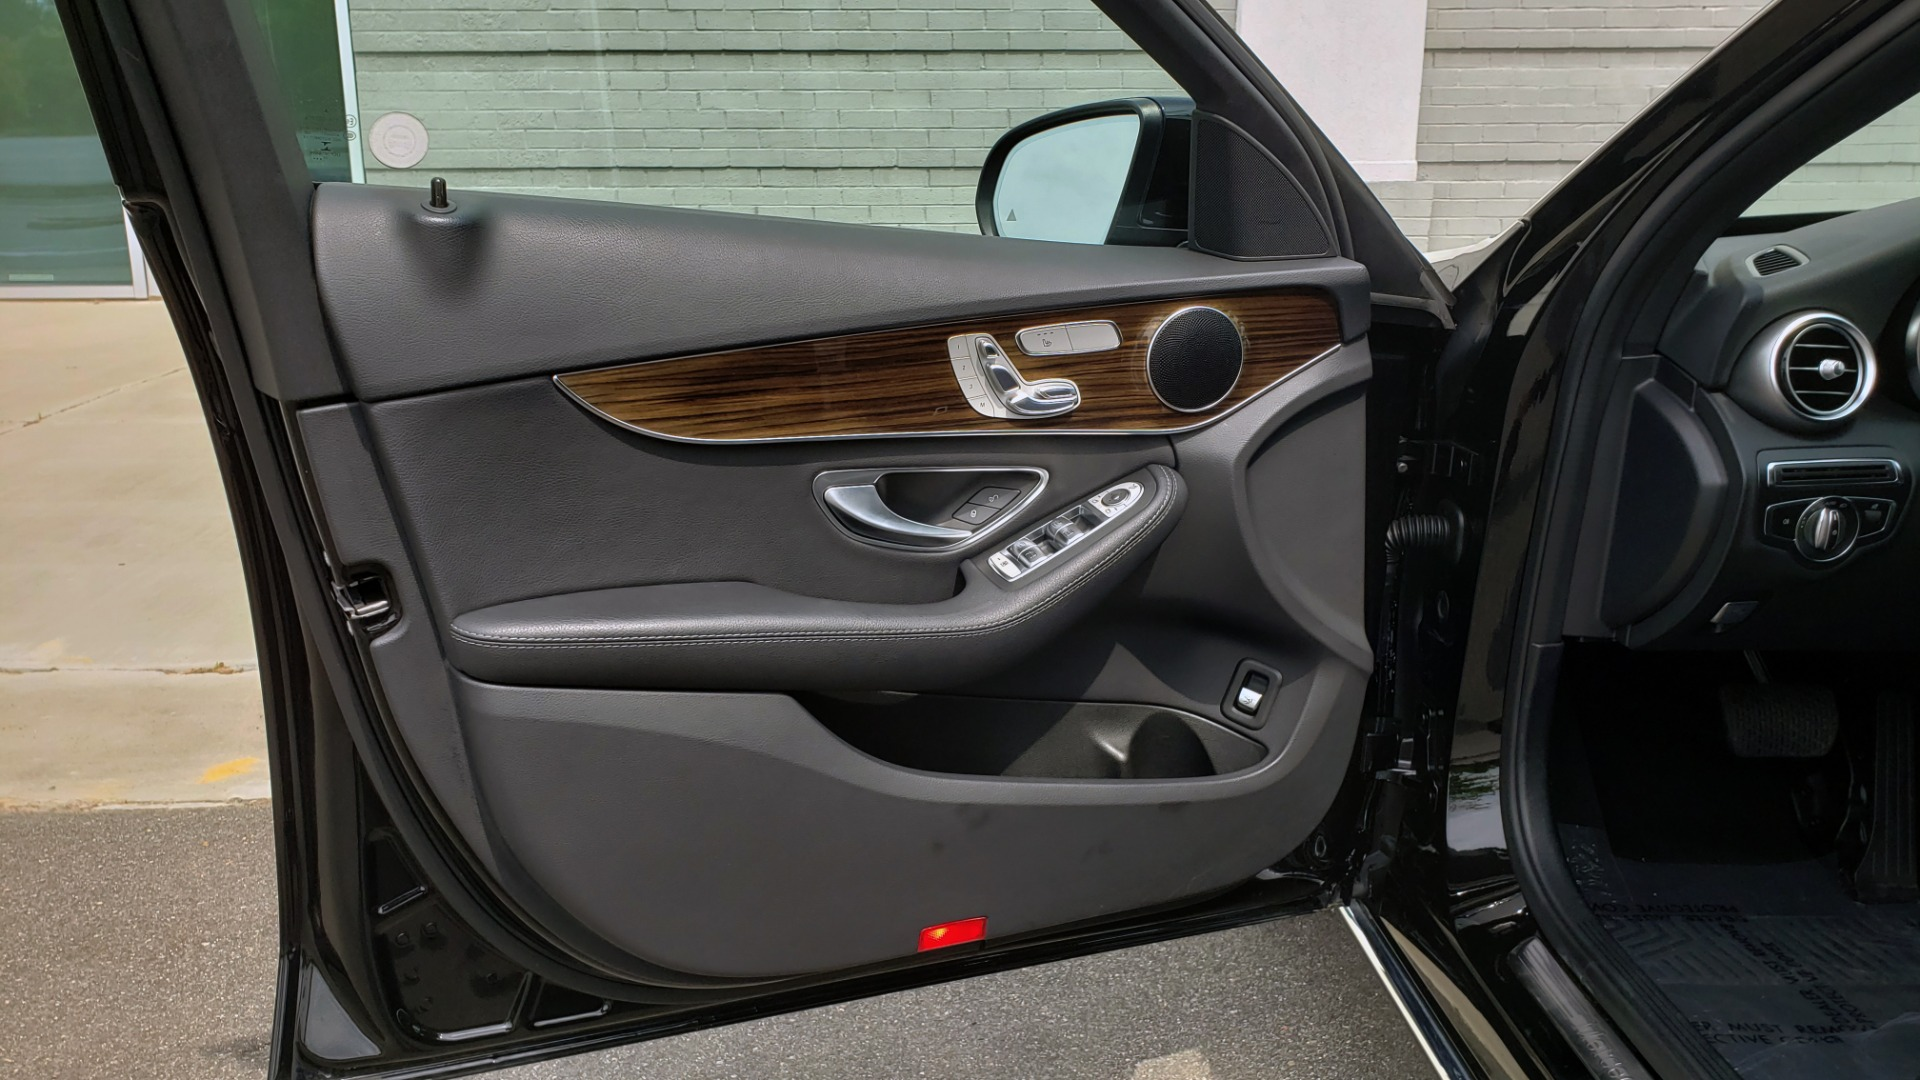 Used 2018 Mercedes-Benz C-CLASS C 300 PREMIUM / HTD STS / APPLE CARPLAY / 18IN WHEELS / REARVIEW for sale $24,795 at Formula Imports in Charlotte NC 28227 31